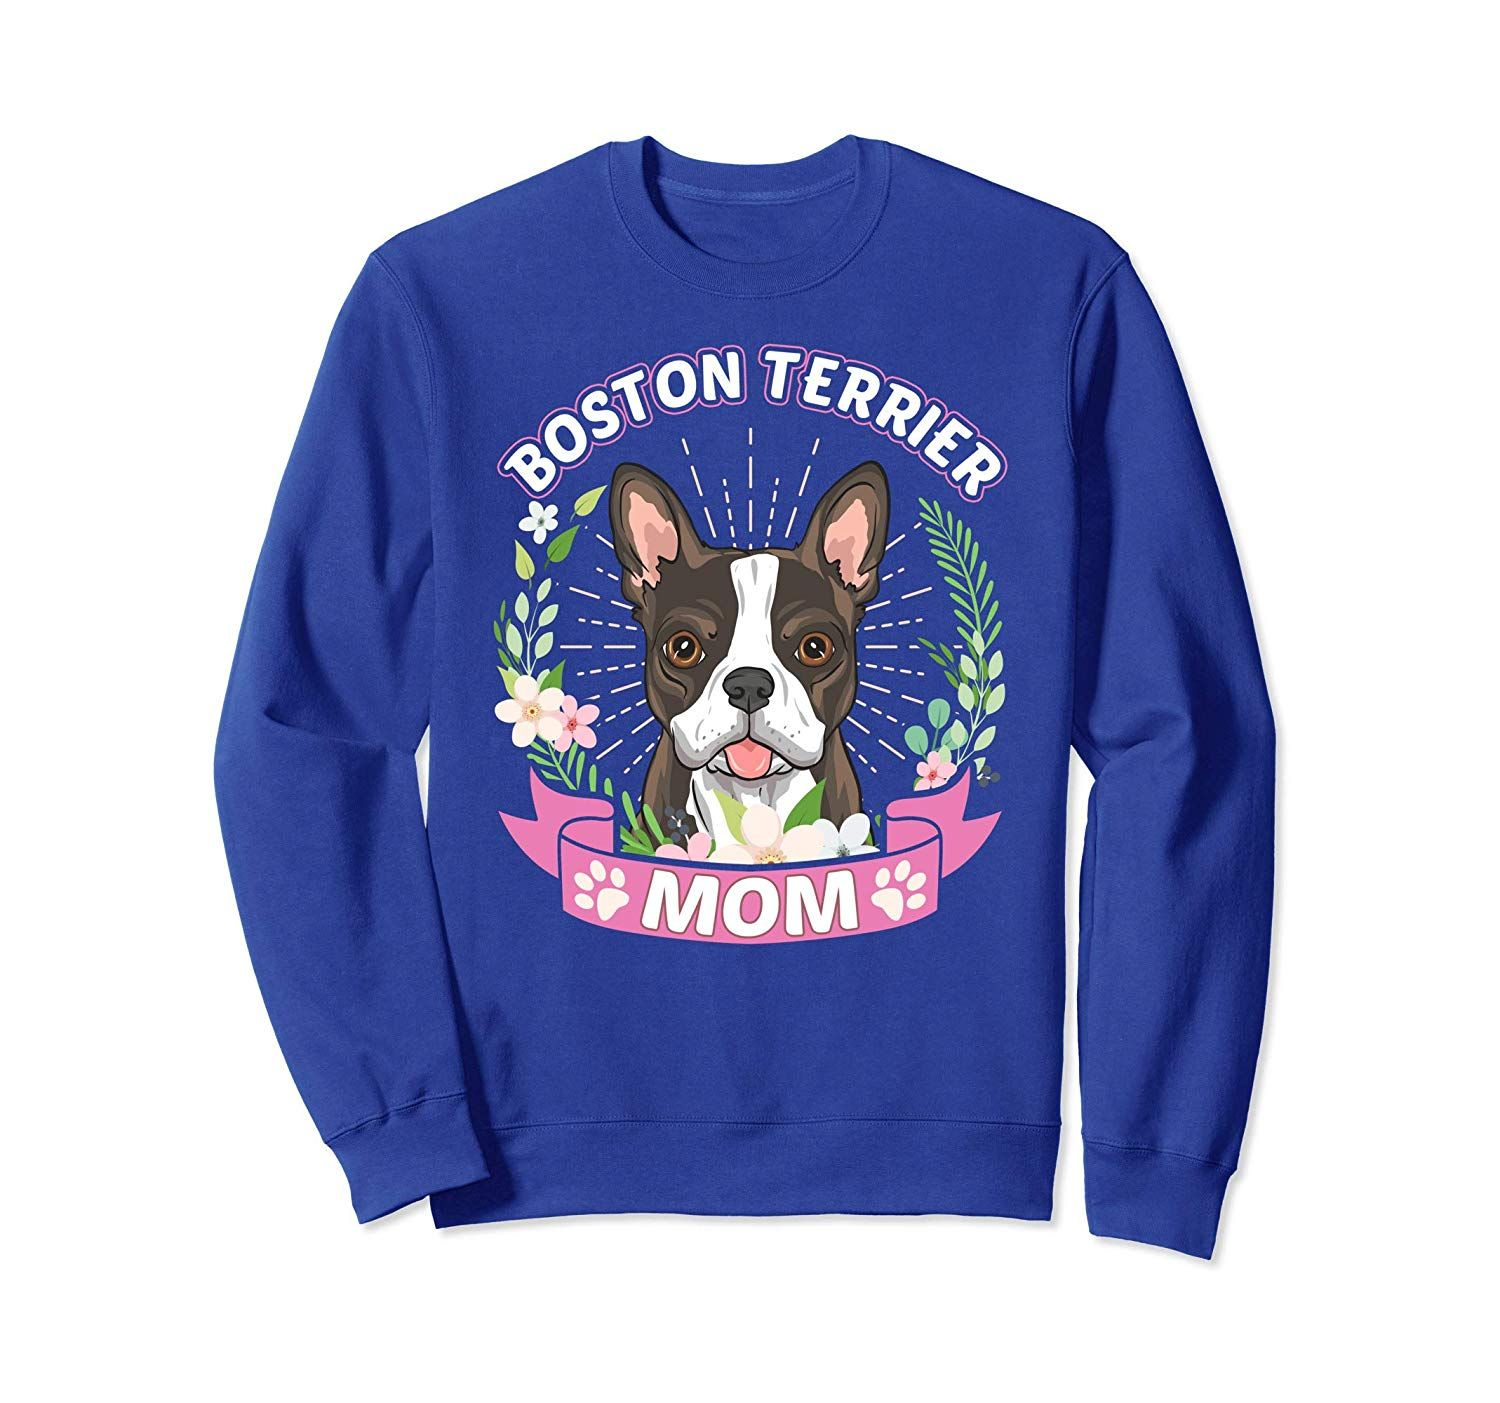 Dog Breed Shirts For Women Boston Terrier Mom Sweatshirt Yolotee Boston Terrier Dog Breeds Sweatshirts